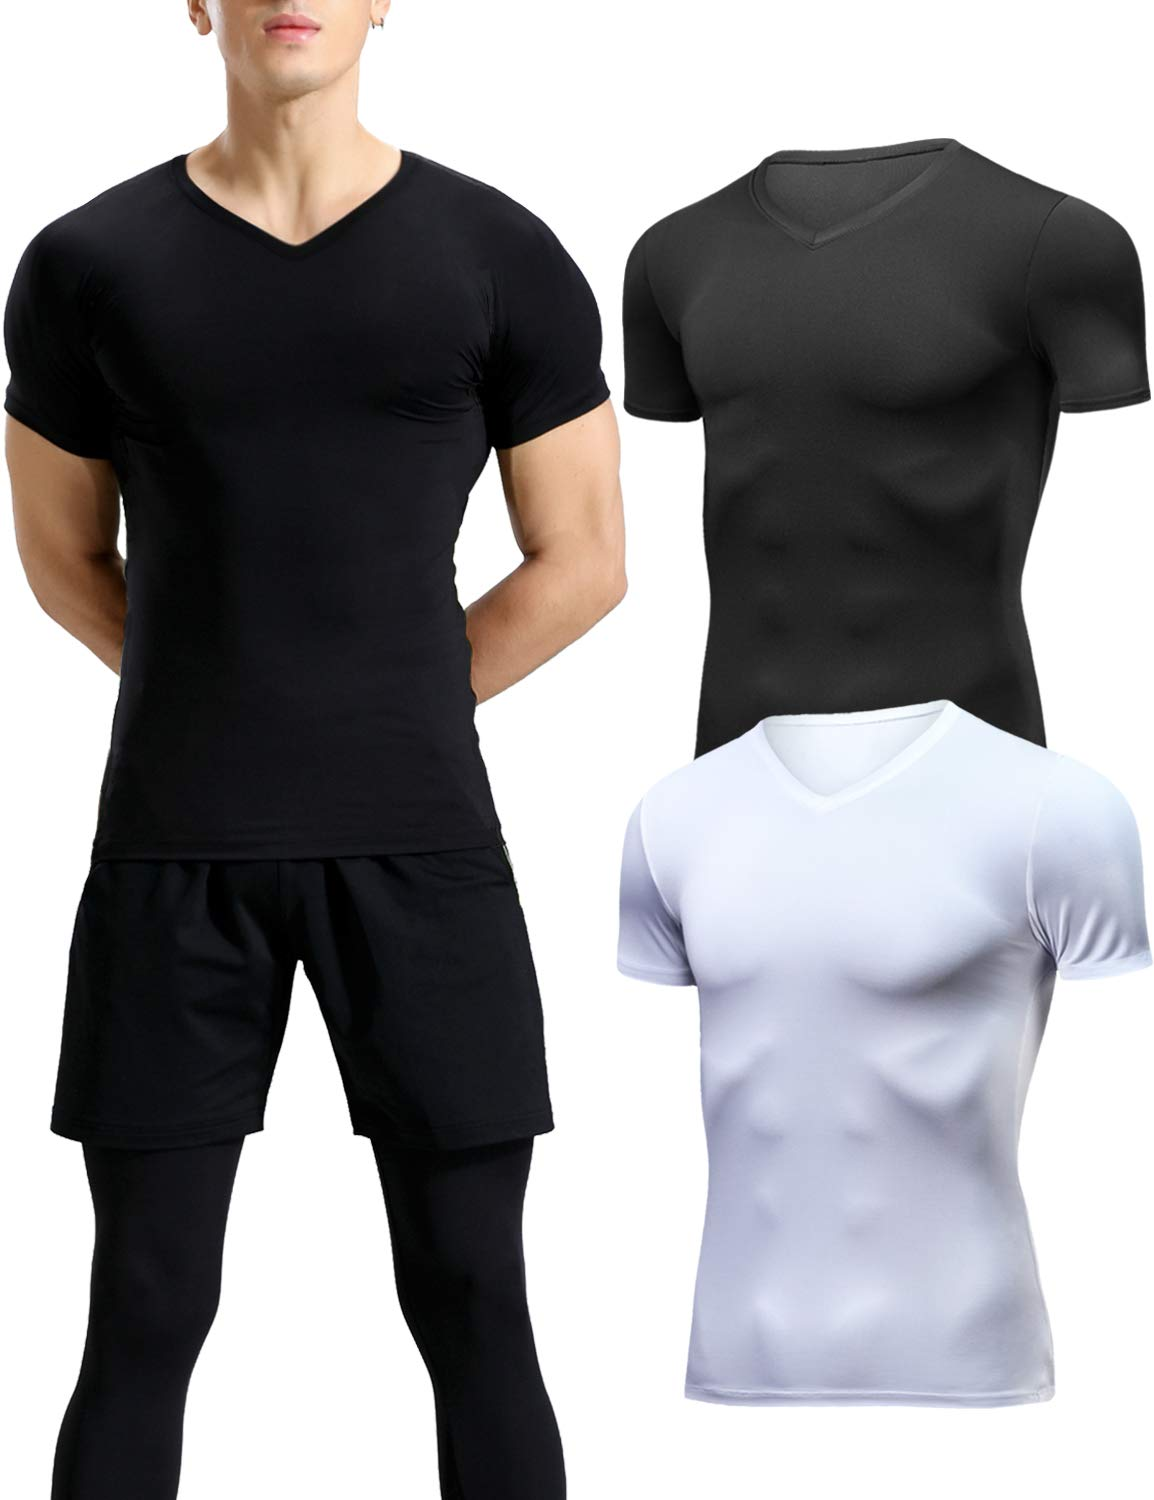 Lavento Men's Compression Shirts Cool Dry Short-Sleeve Workout Undershirts (2 Pack-V Neck Black/White,X-Large) by Lavento